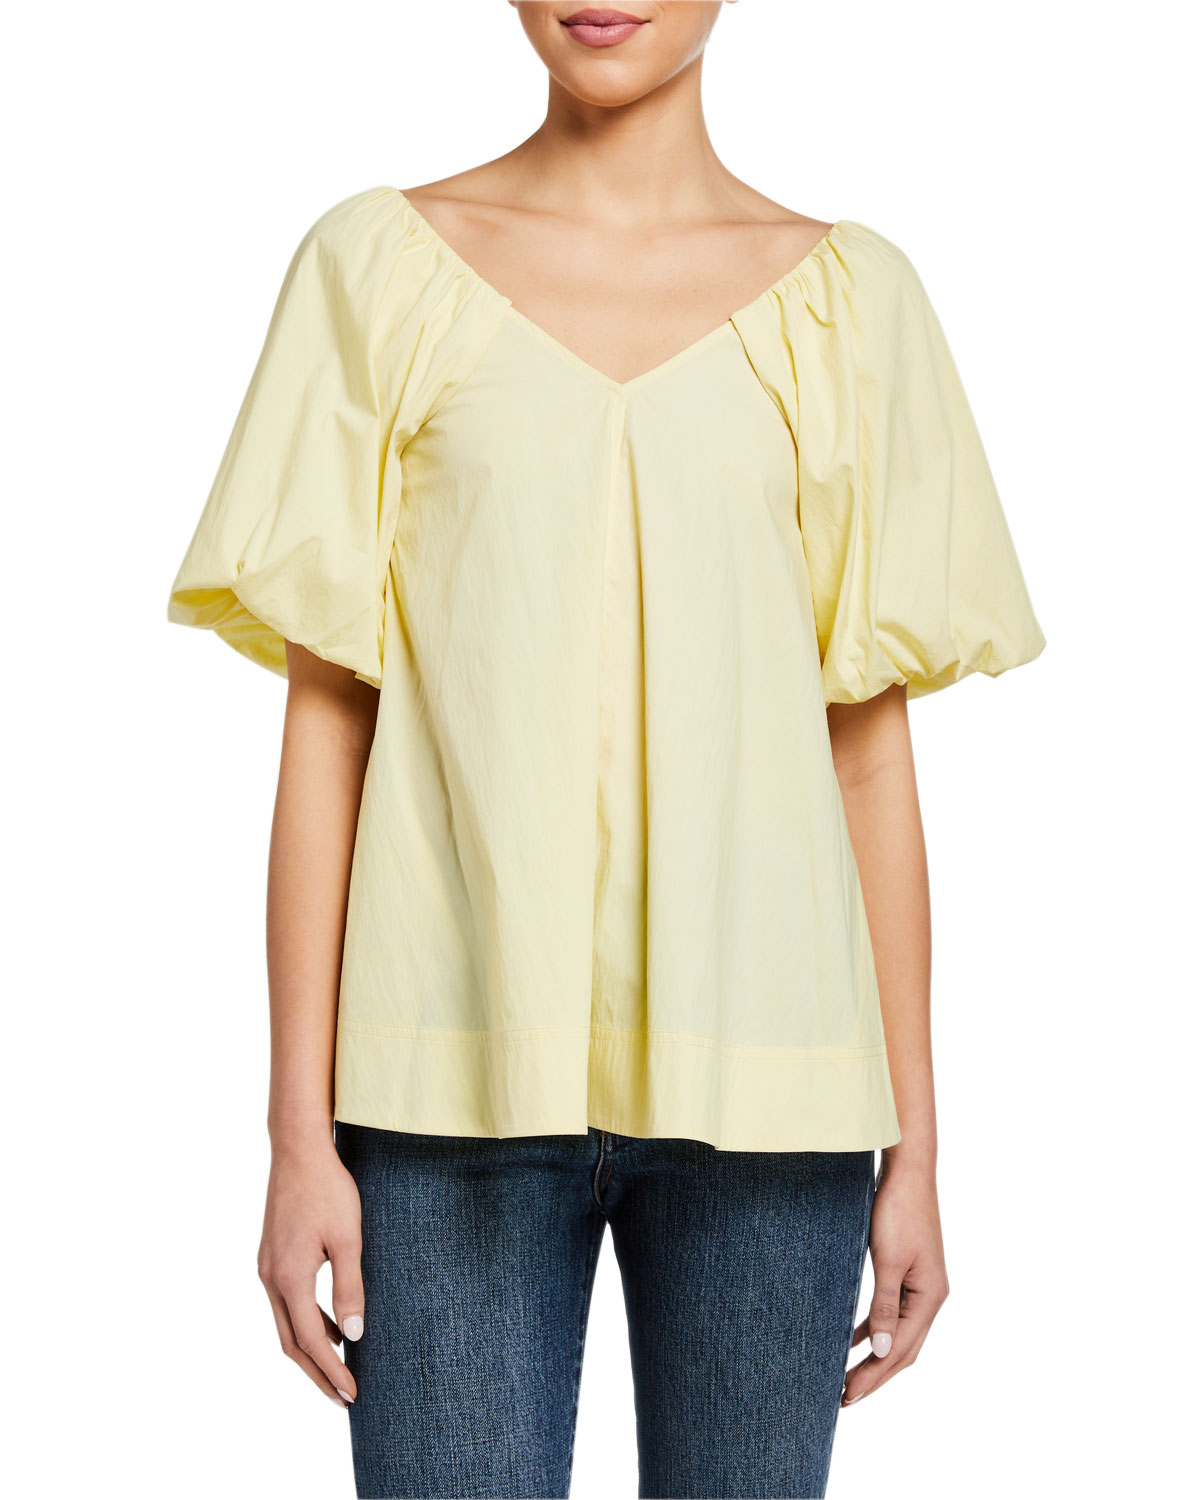 Co Tops PUFF-SLEEVE V-NECK TOP